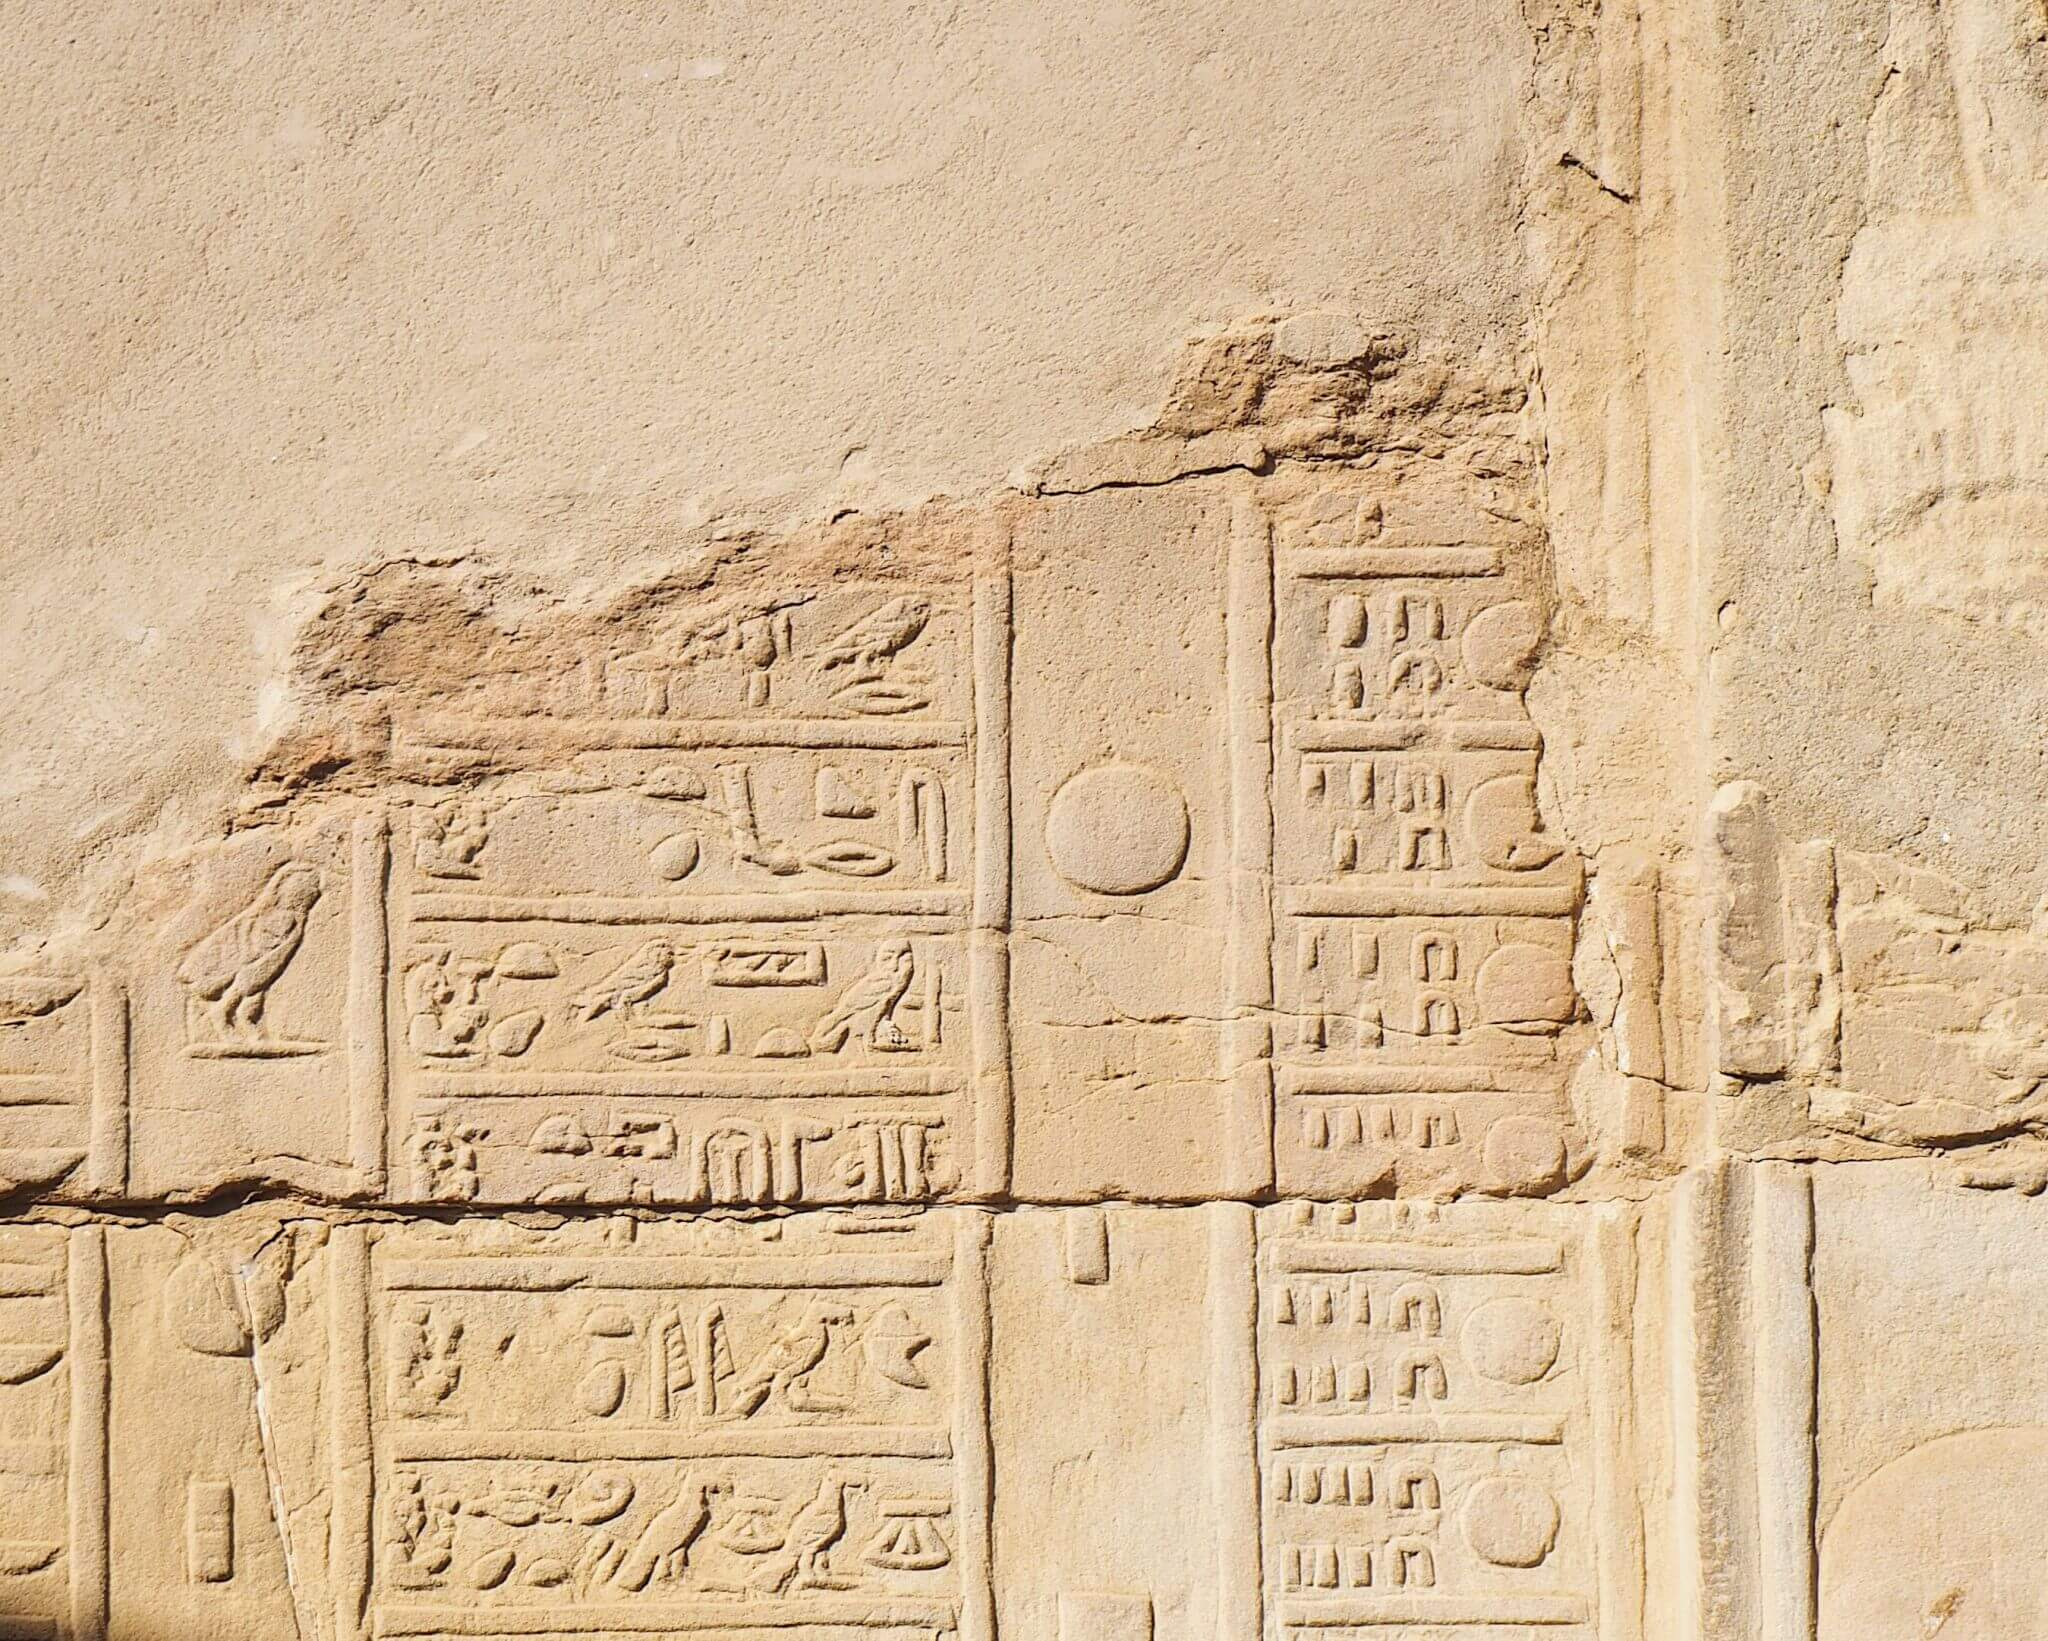 image of hieroglyphics in Kom Ombo temple